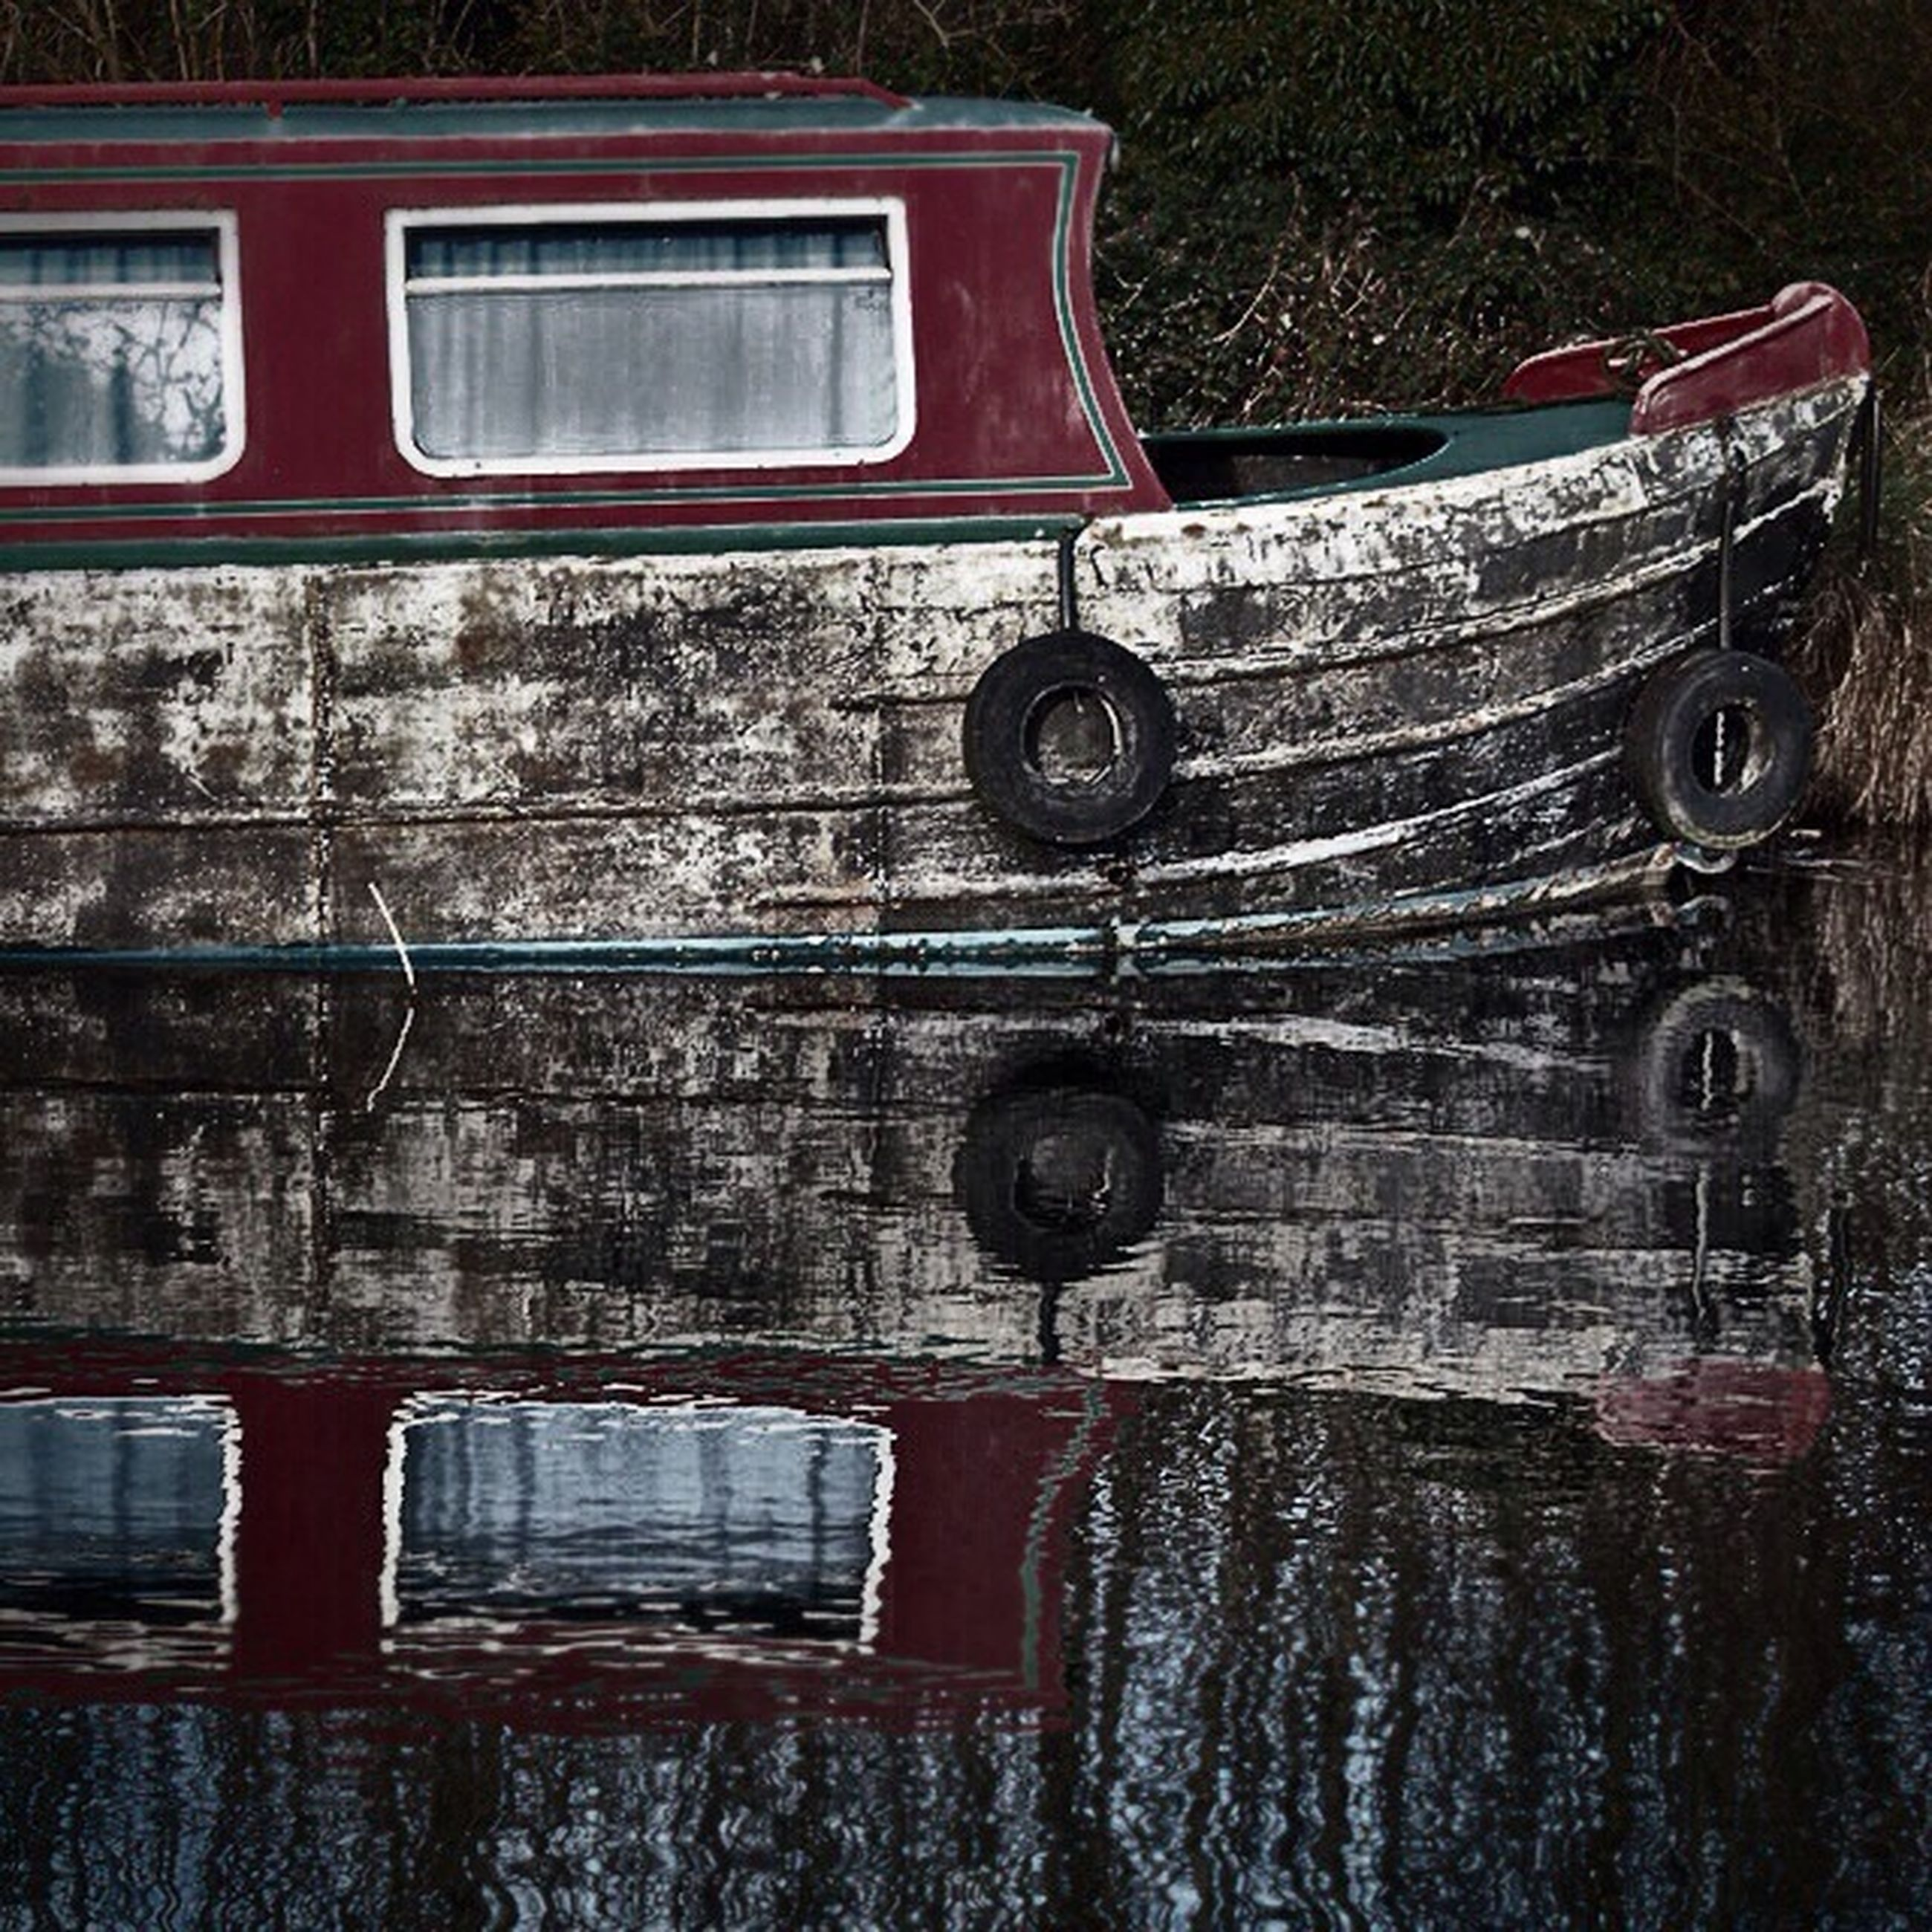 reflection, water, transportation, old, mode of transport, built structure, architecture, window, glass - material, no people, outdoors, day, abandoned, building exterior, car, old-fashioned, tree, metal, obsolete